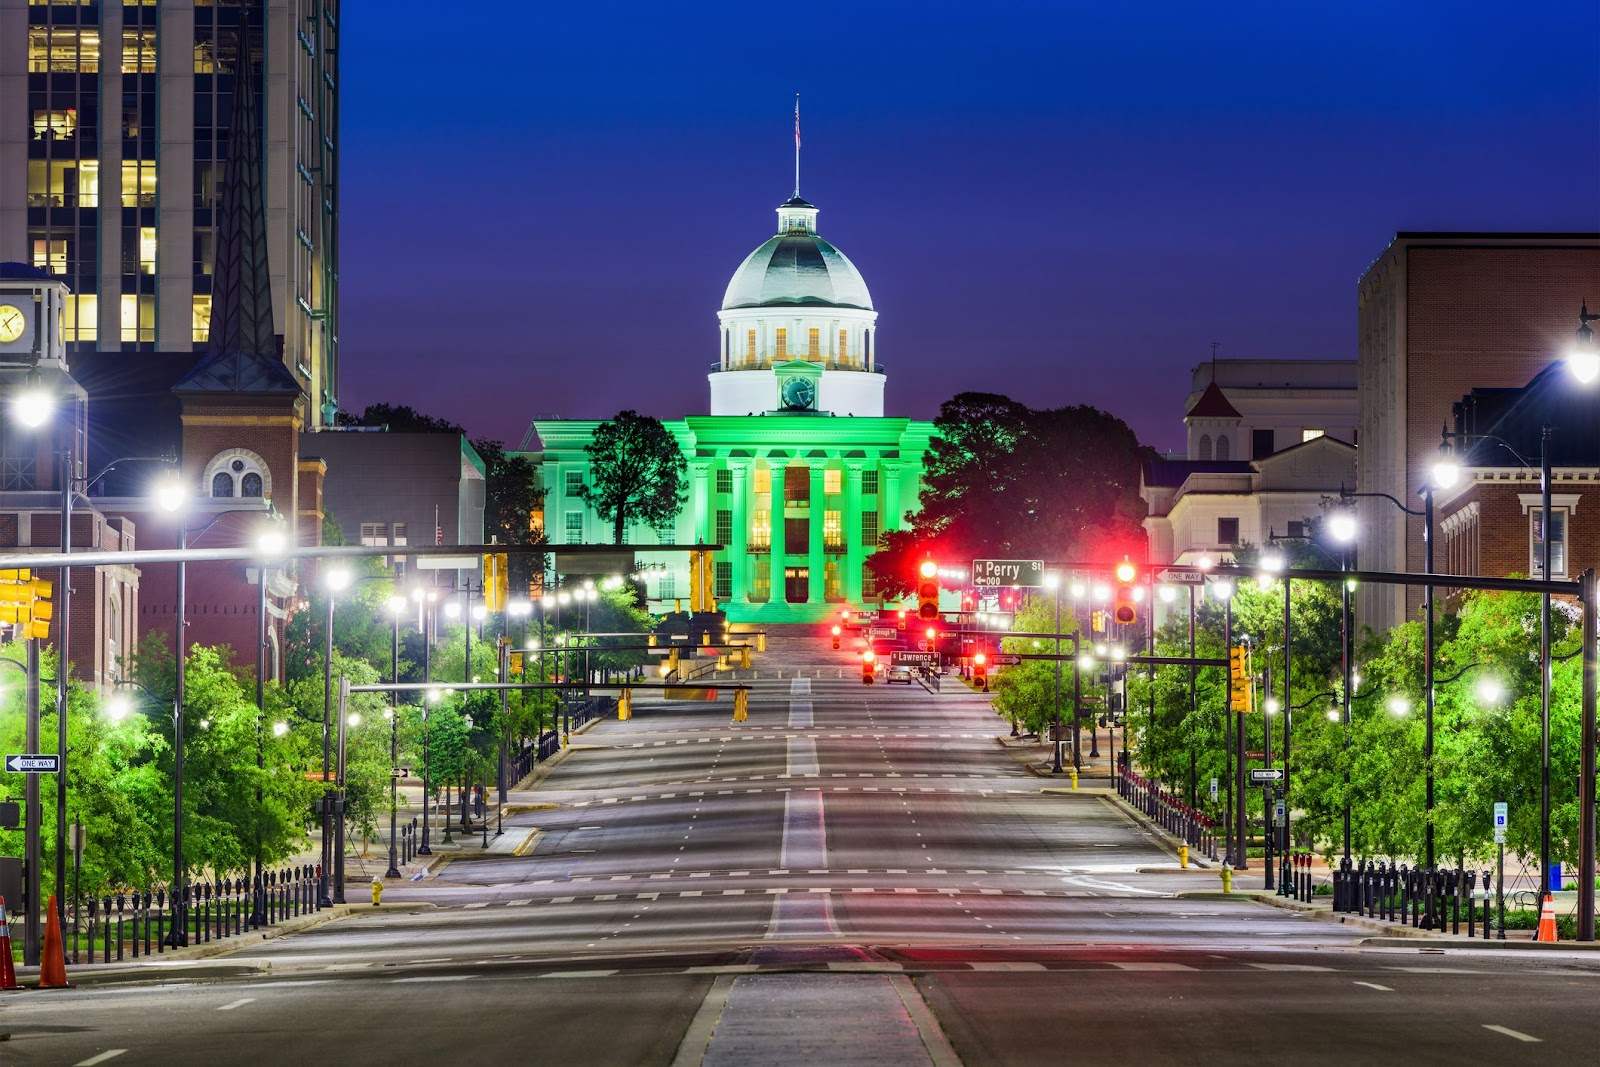 Journey Through American History in Montgomery, Alabama